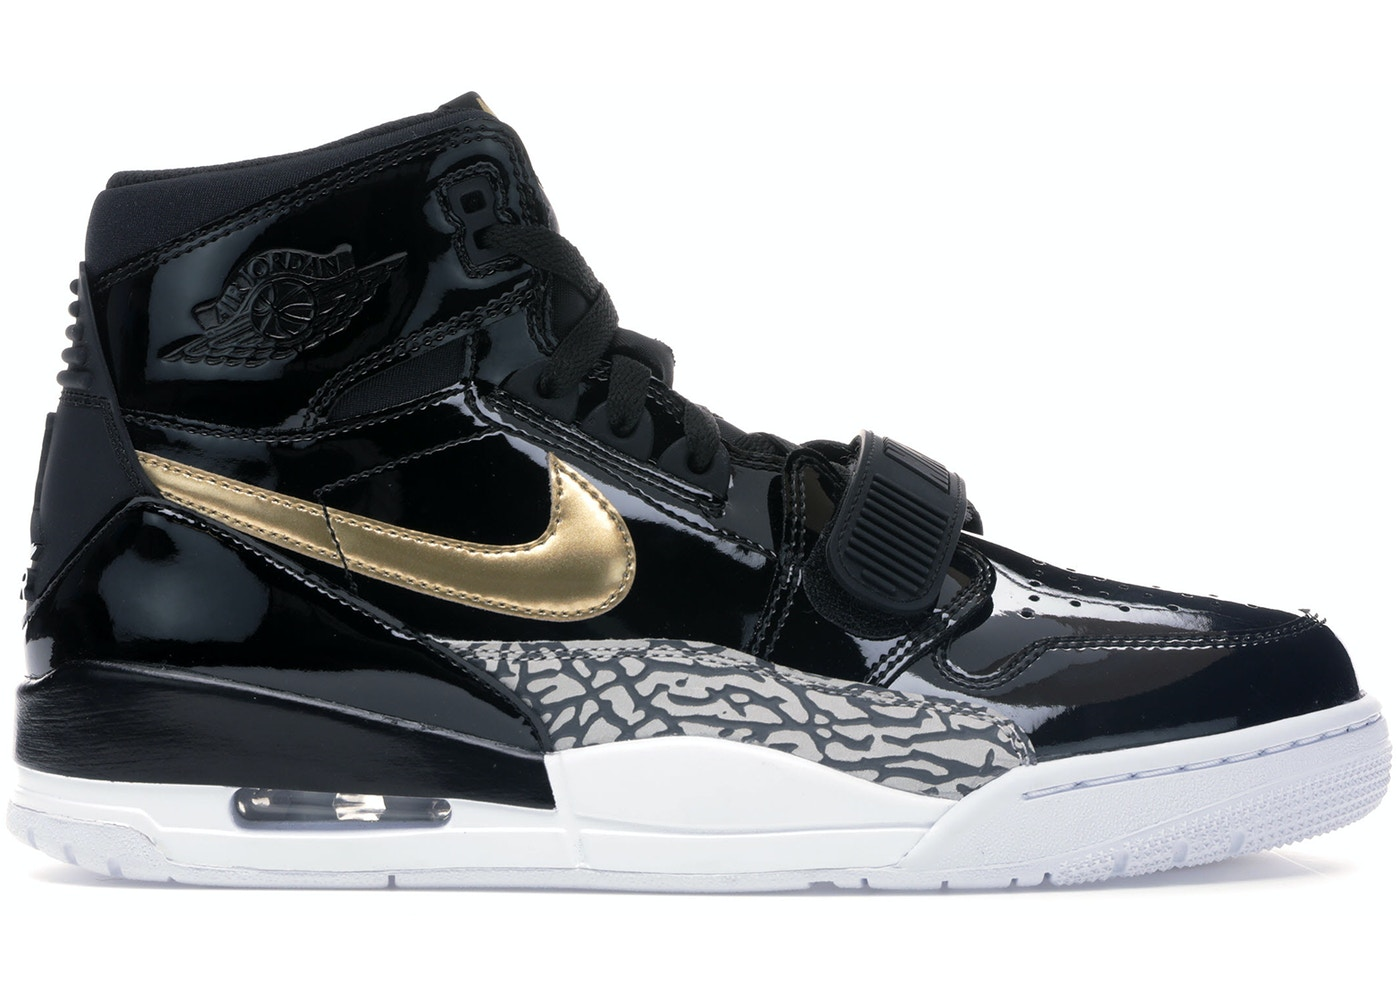 3453fd18a46 Sell. or Ask. Size 9. View All Bids. Jordan Legacy 312 Black Gold Patent